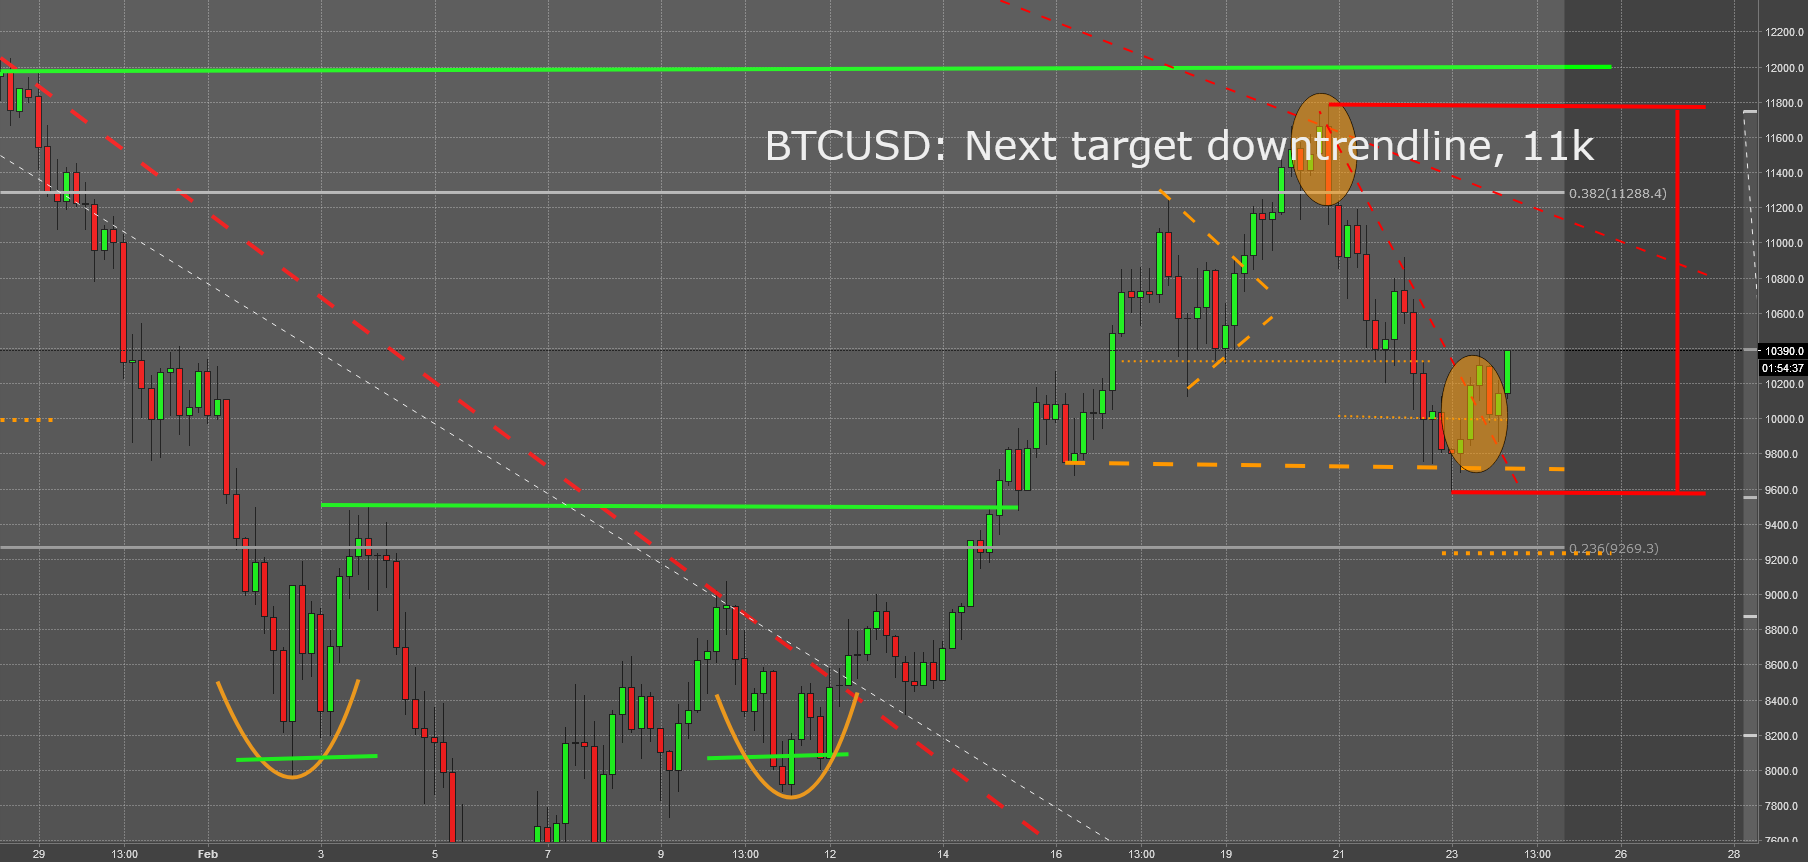 BTC likely to end minor downtrend. Next target @ 11k